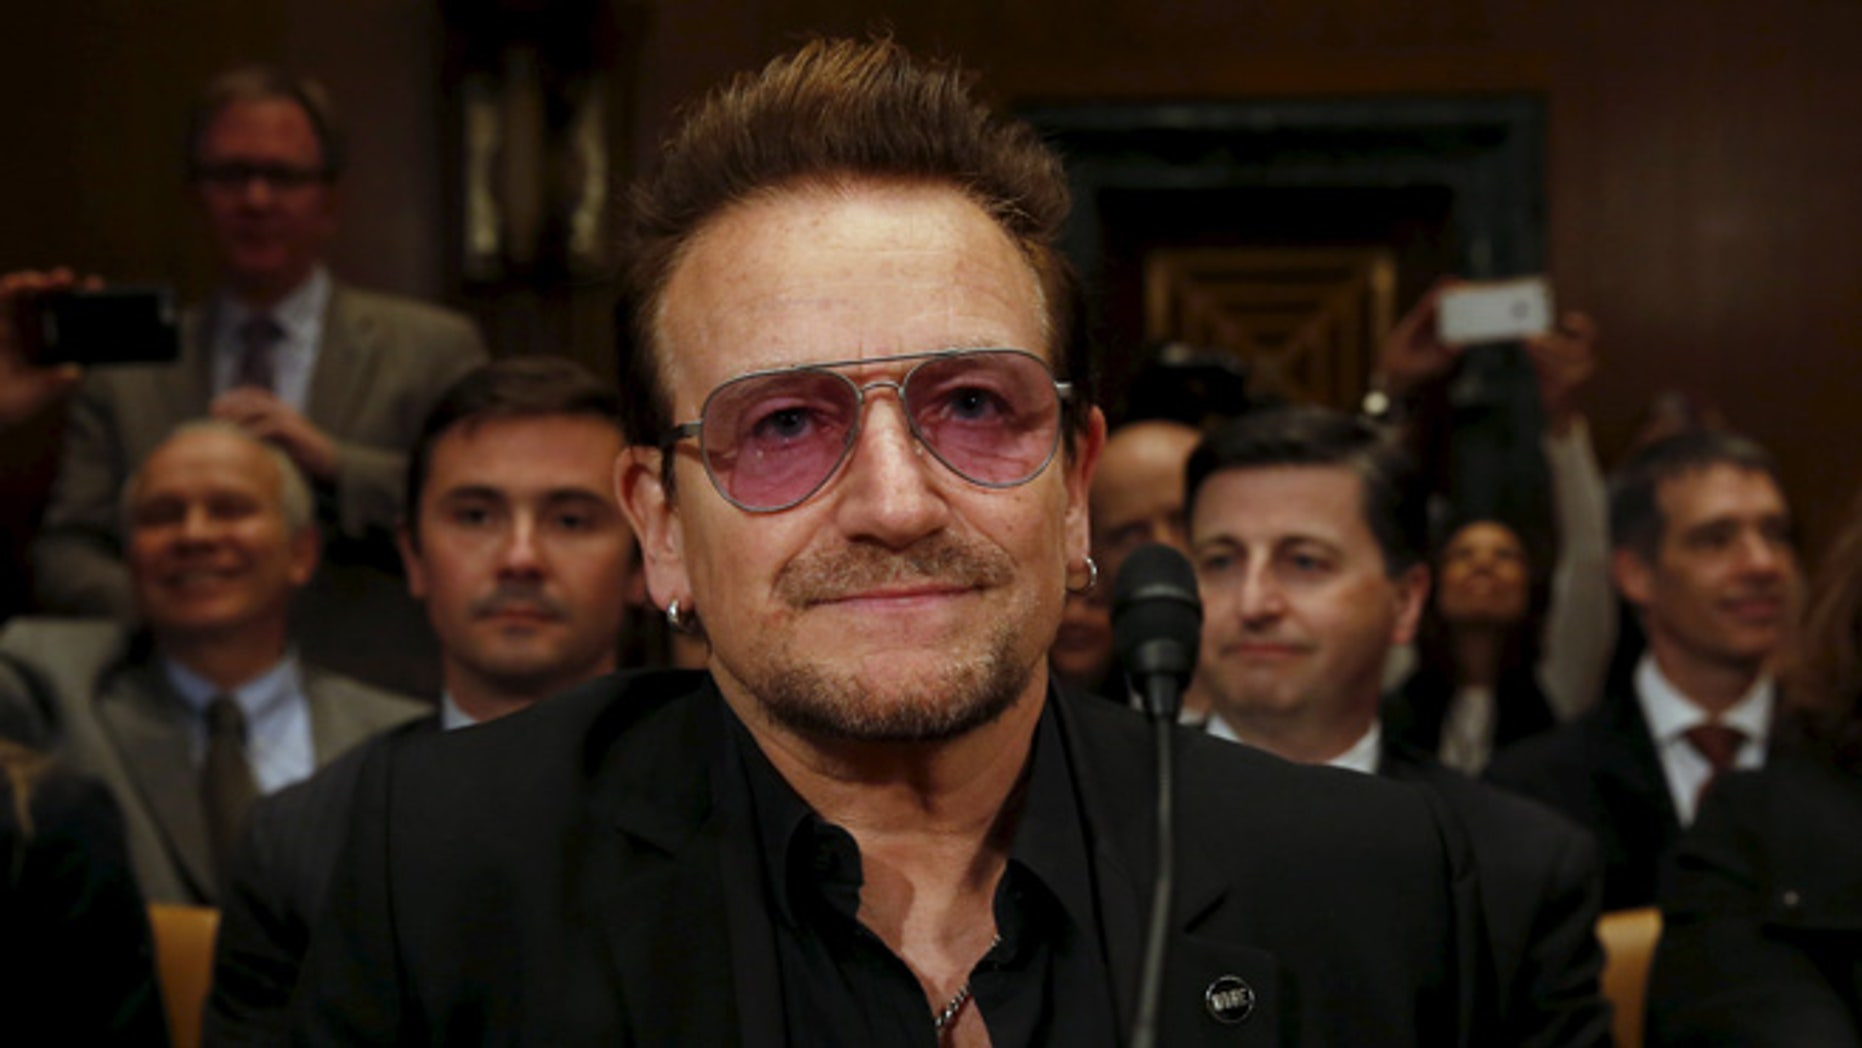 U2 lead singer Bono attends a Senate subcommittee hearing on Capitol Hill. (Reuters)